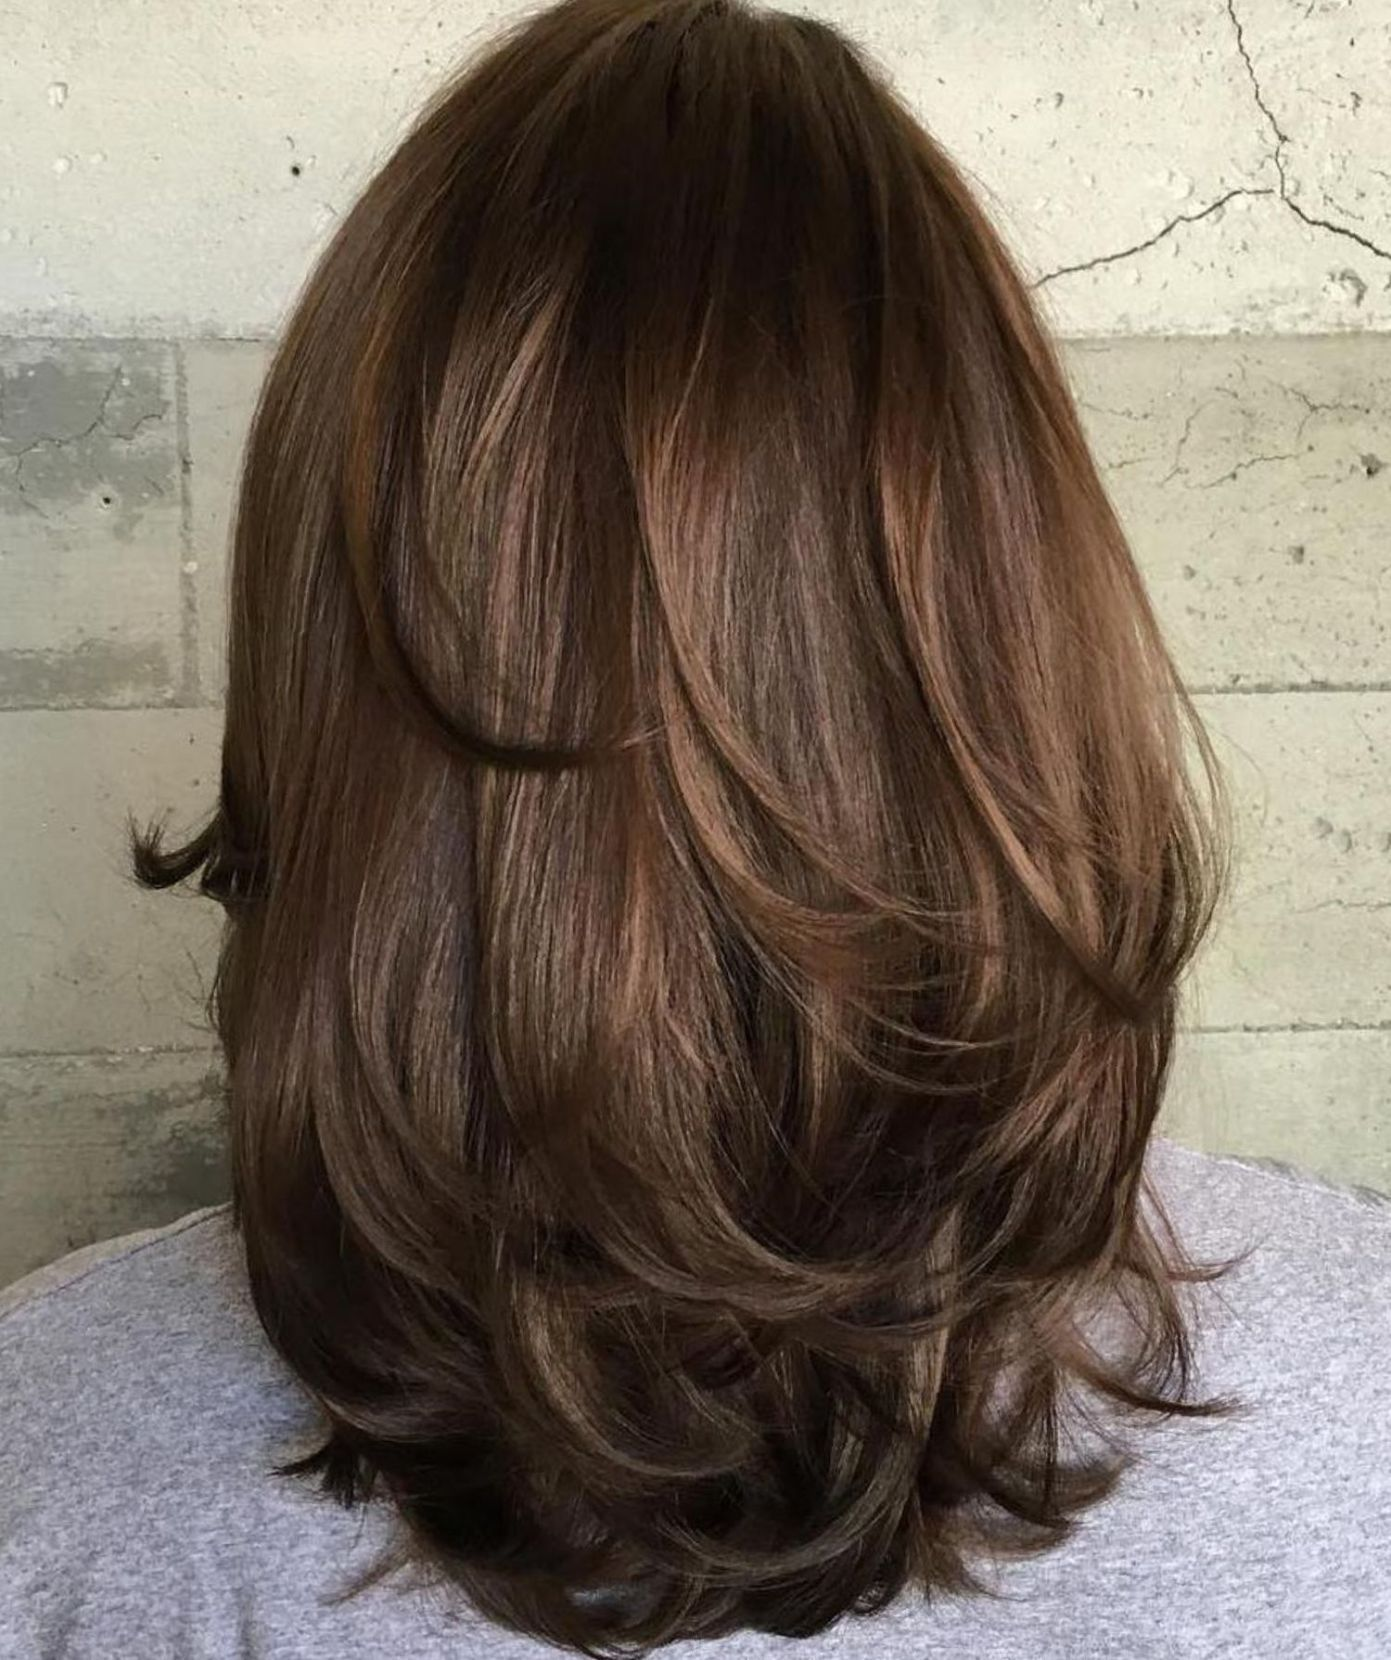 Back View Shoulder Length Layered Haircuts For Thick Hair 10